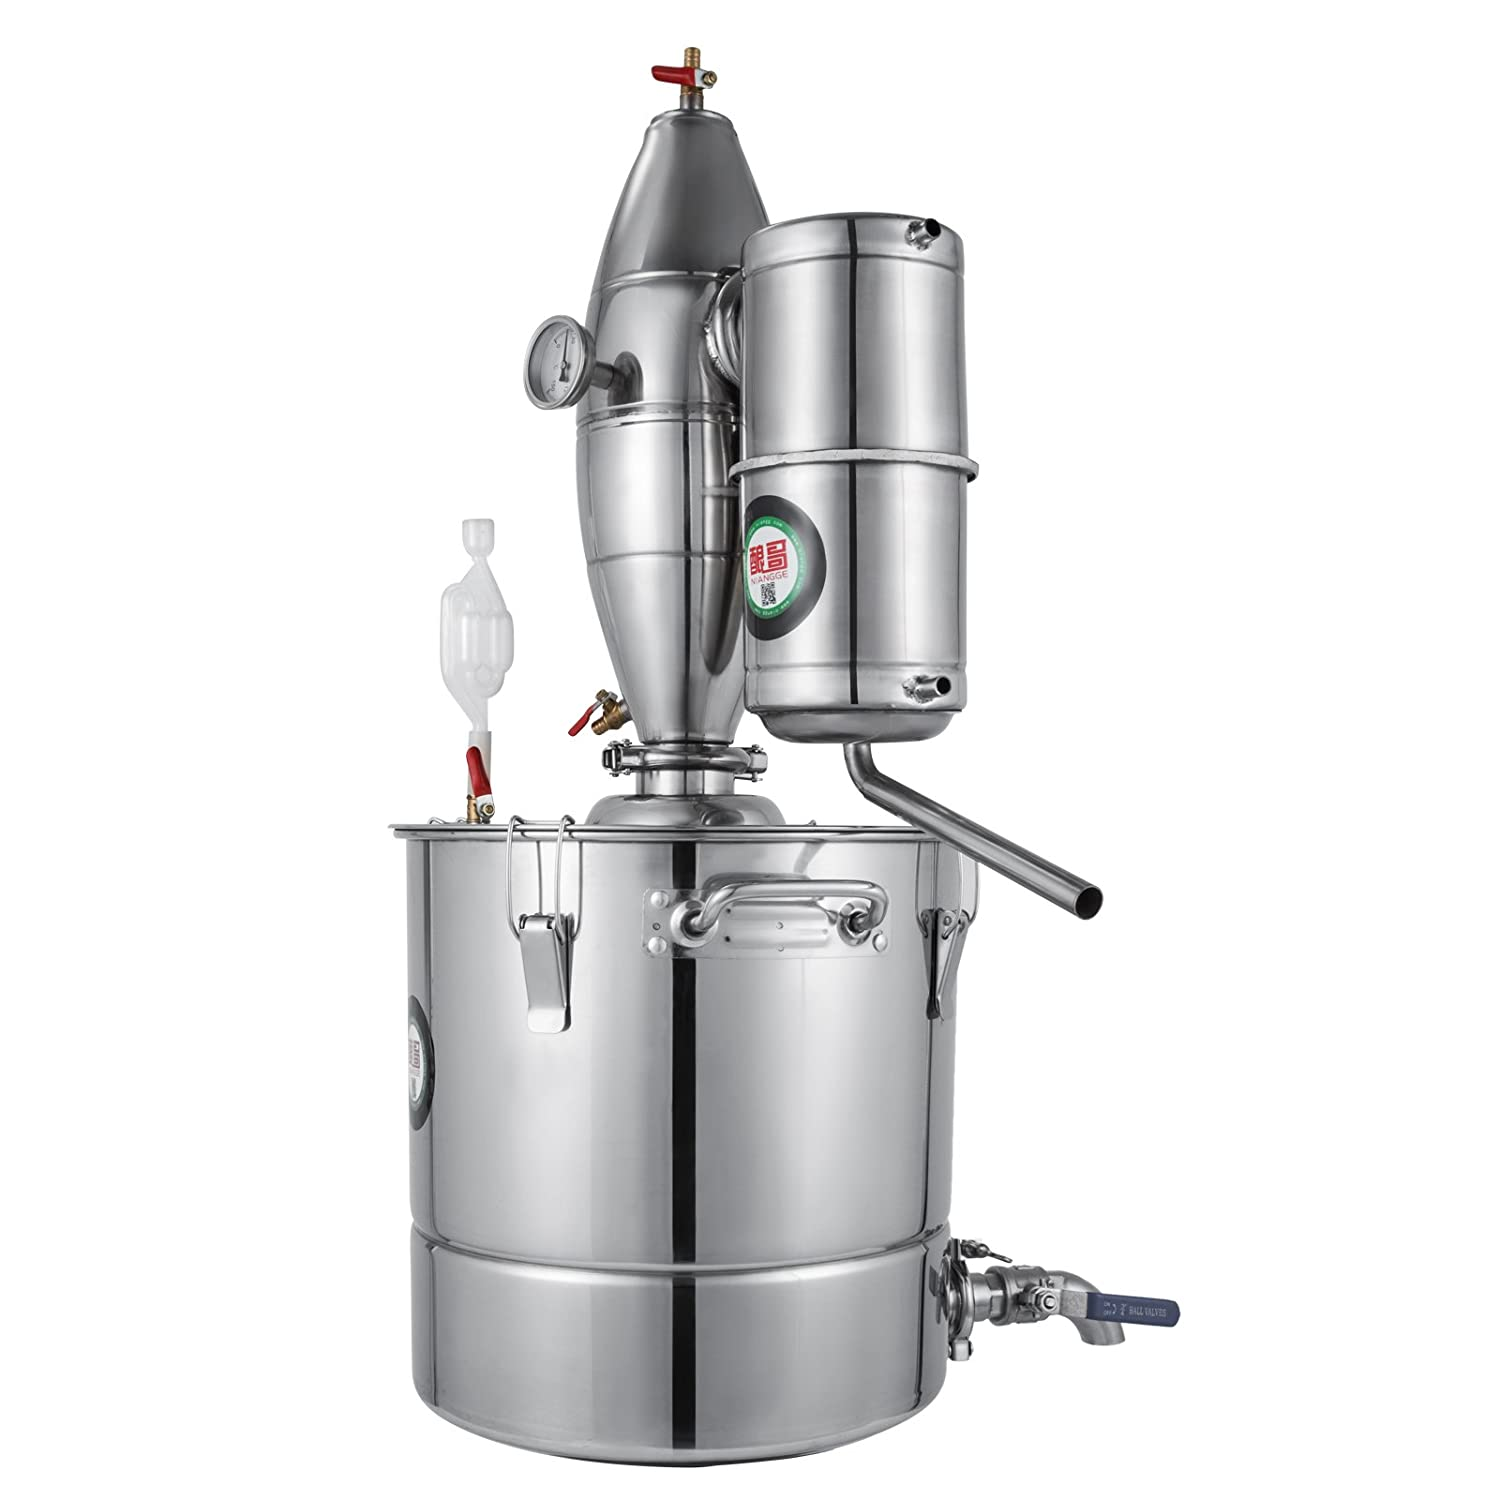 Water Distillers For Home ~ Best water distillers for at home use backdoor survival